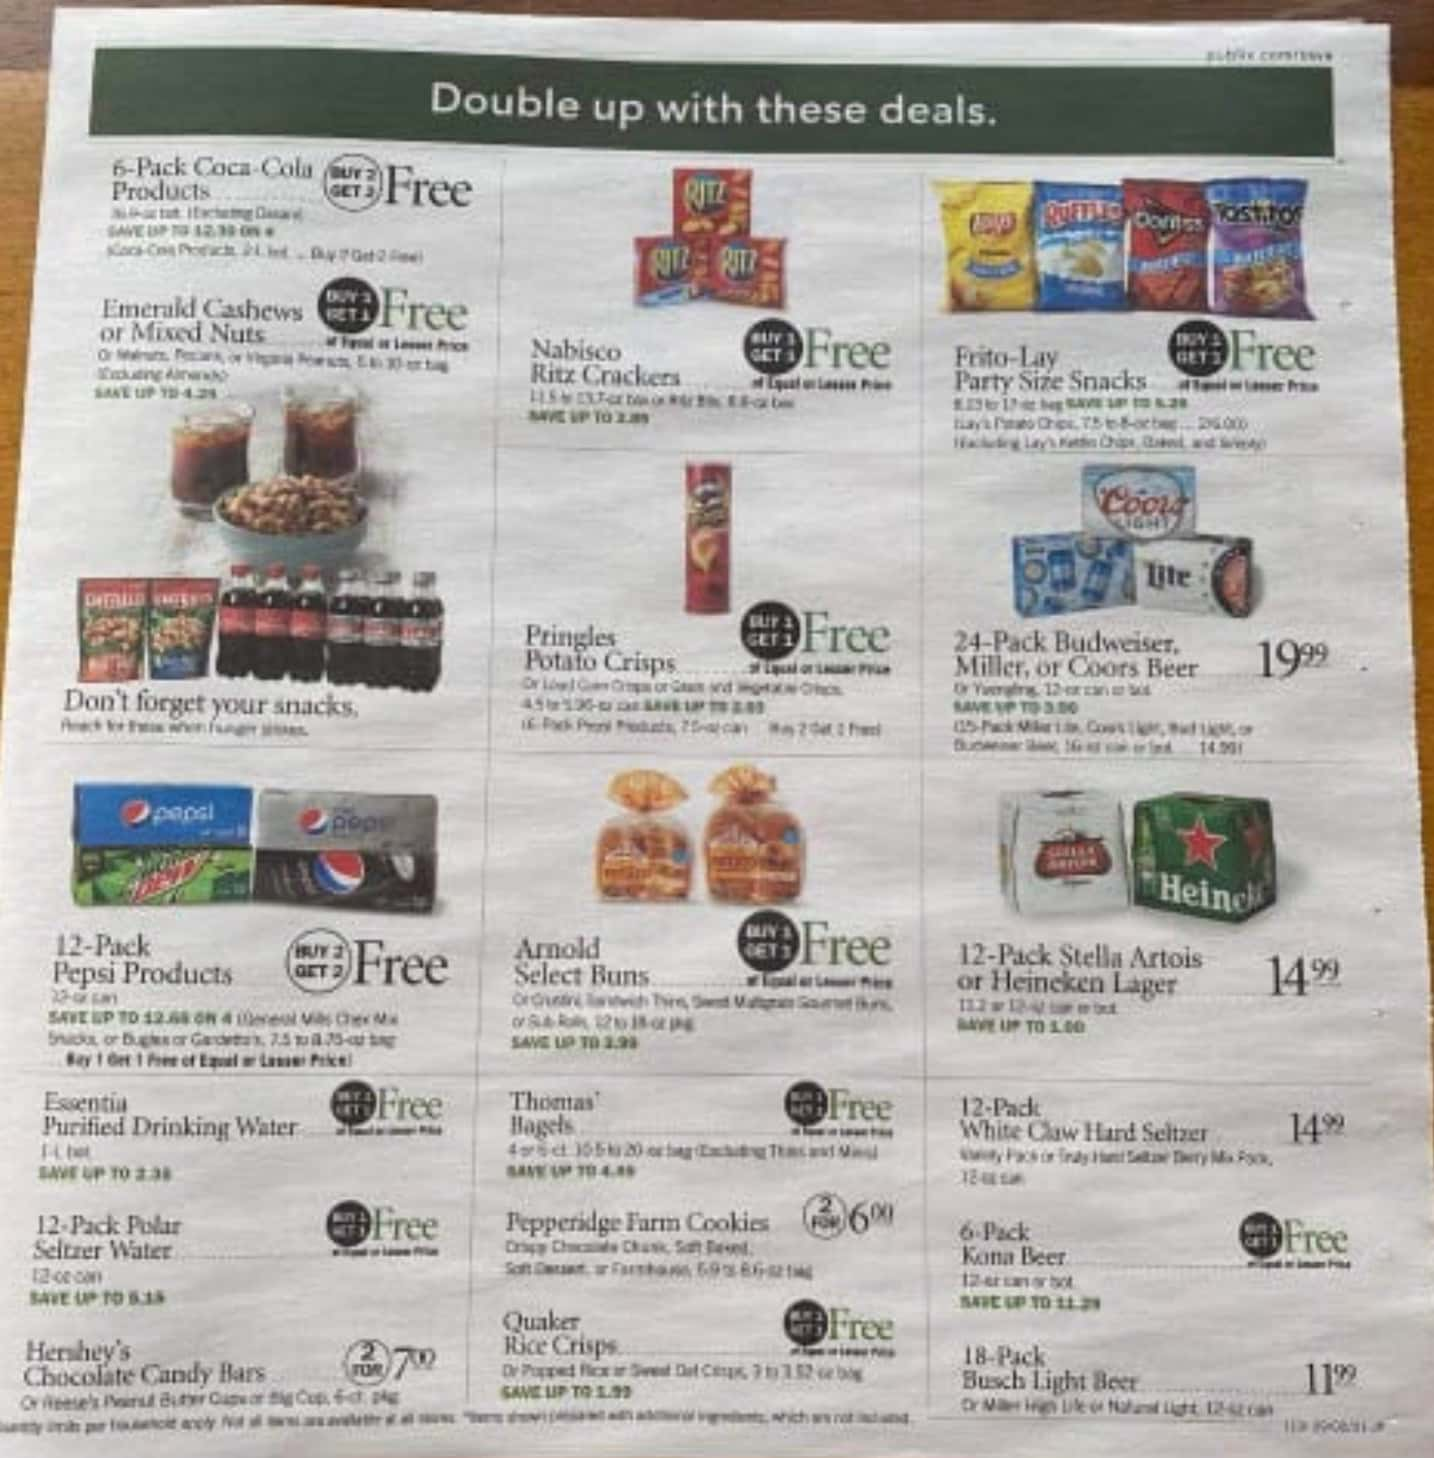 publix_weekly_ad_090121_13